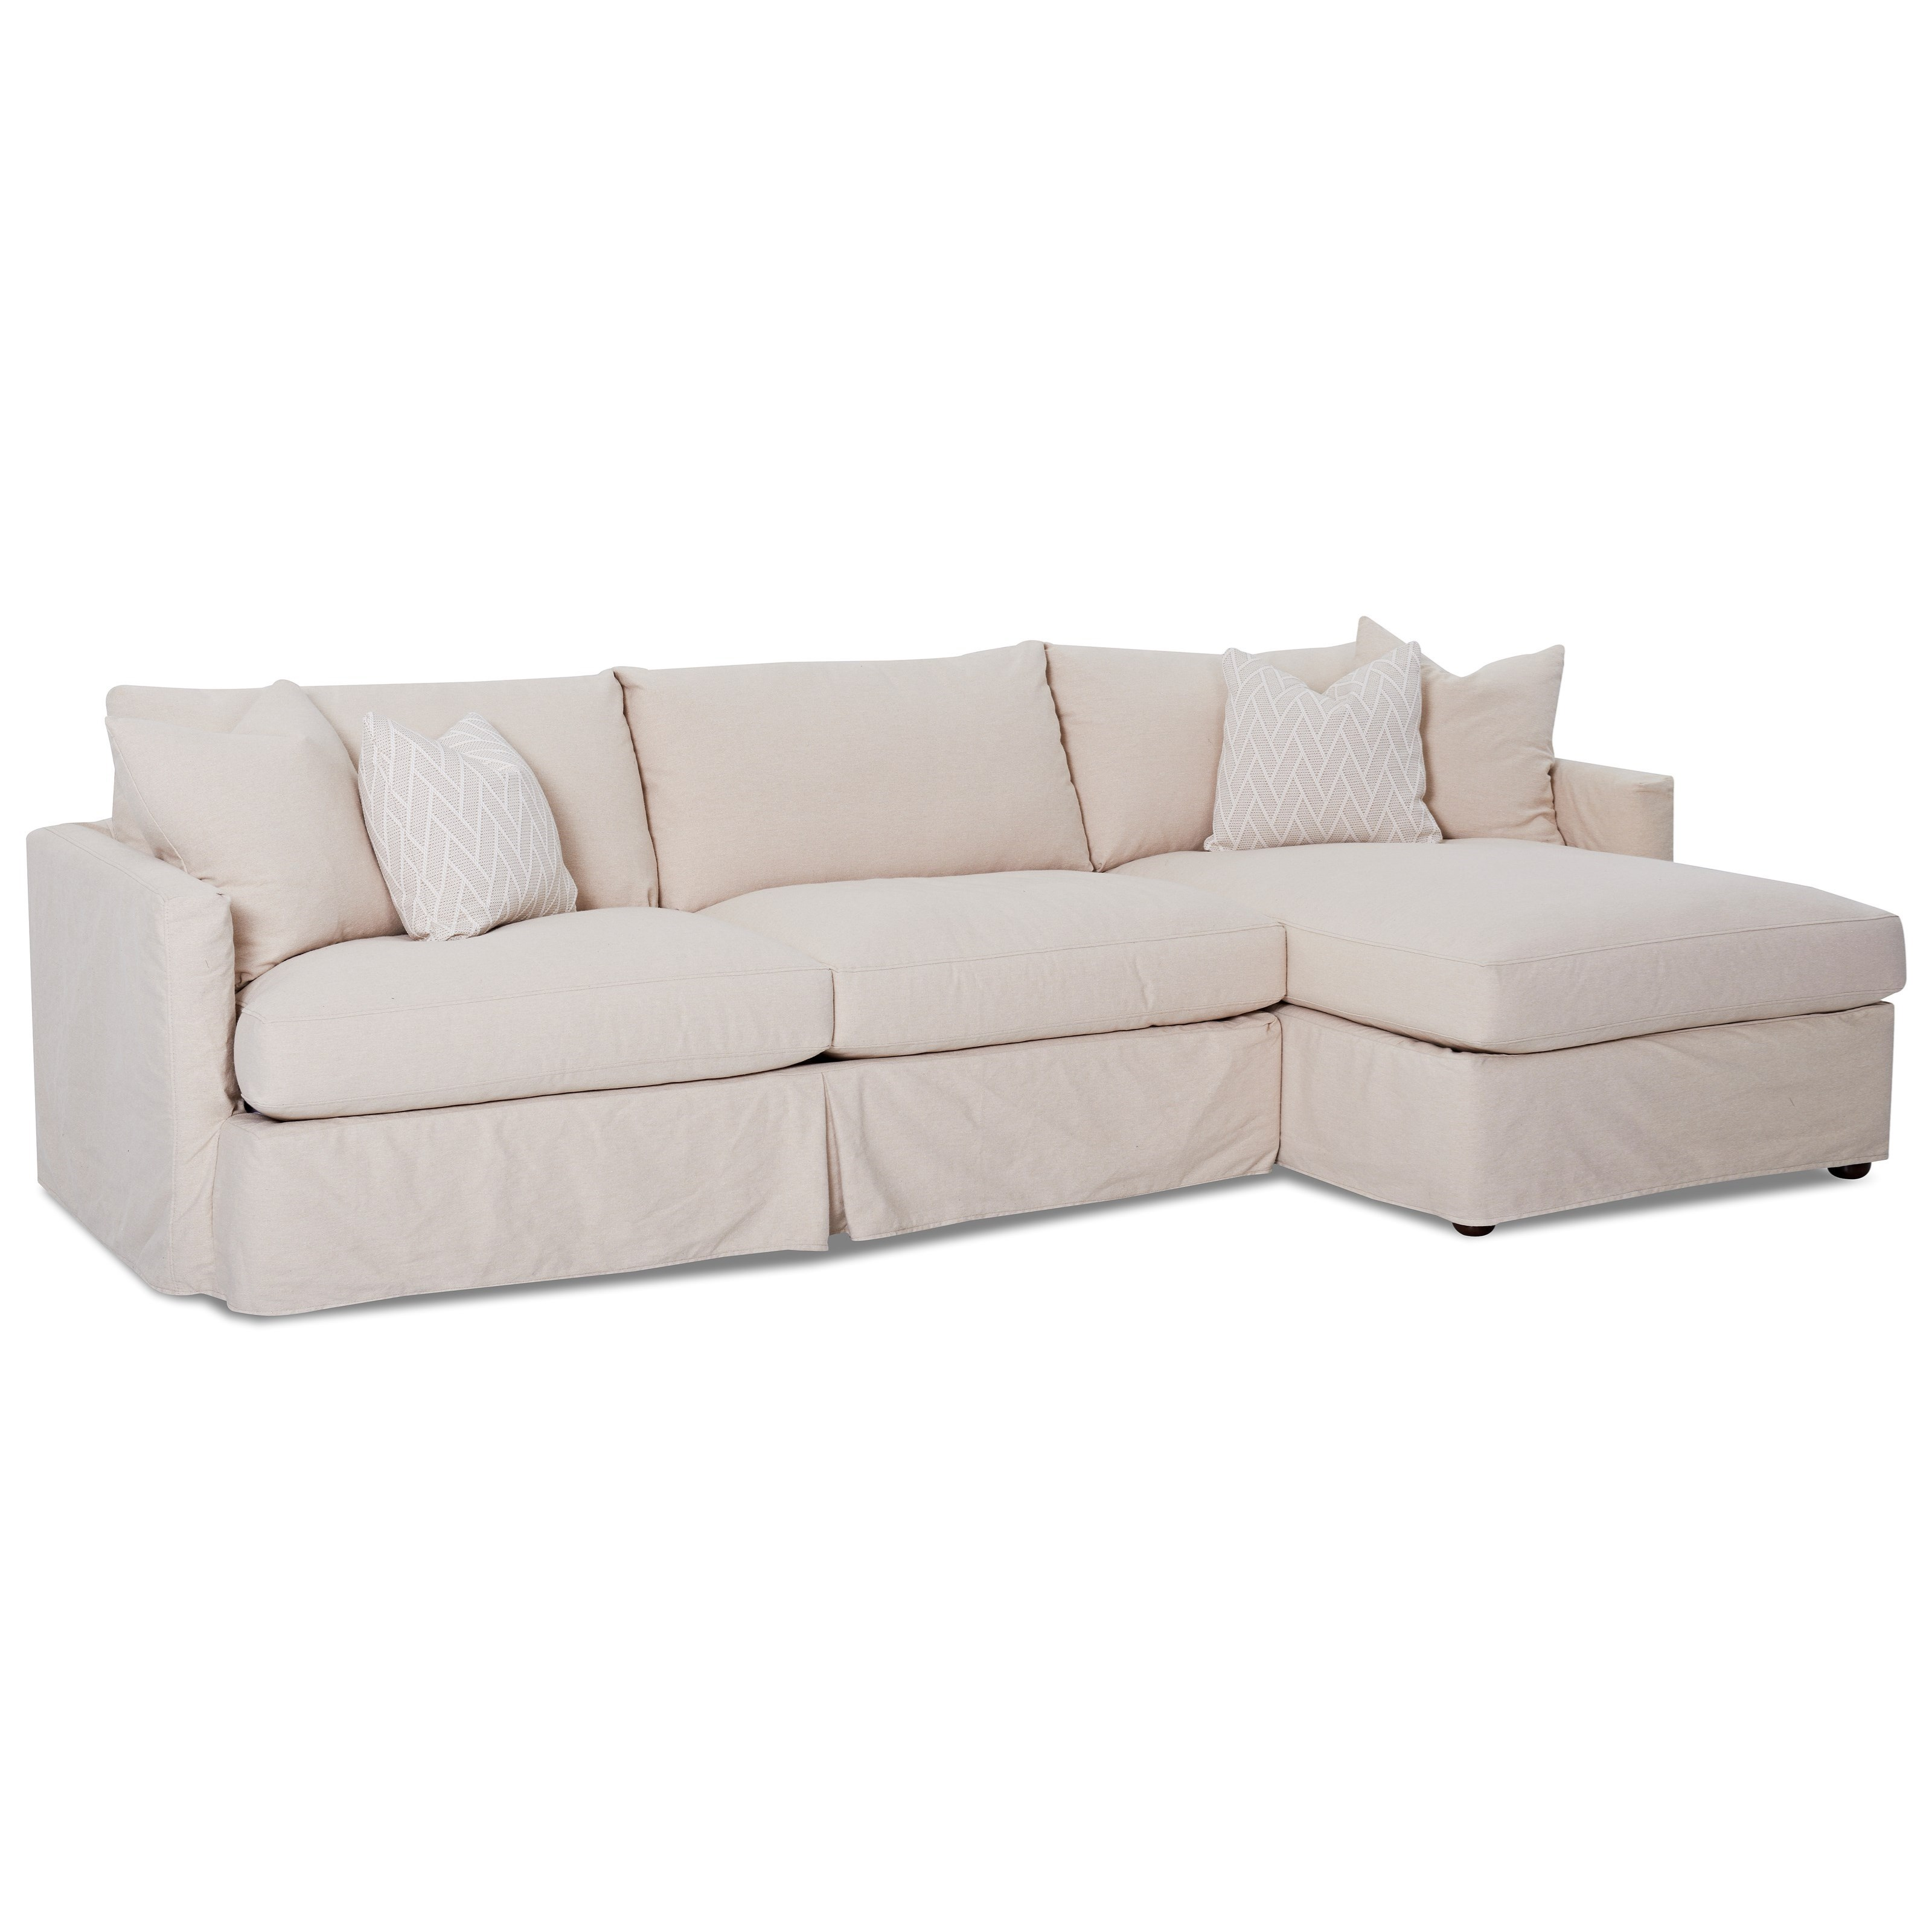 Leisure 2 Pc Sectional Sofa with Slipcover by Klaussner at Northeast Factory Direct